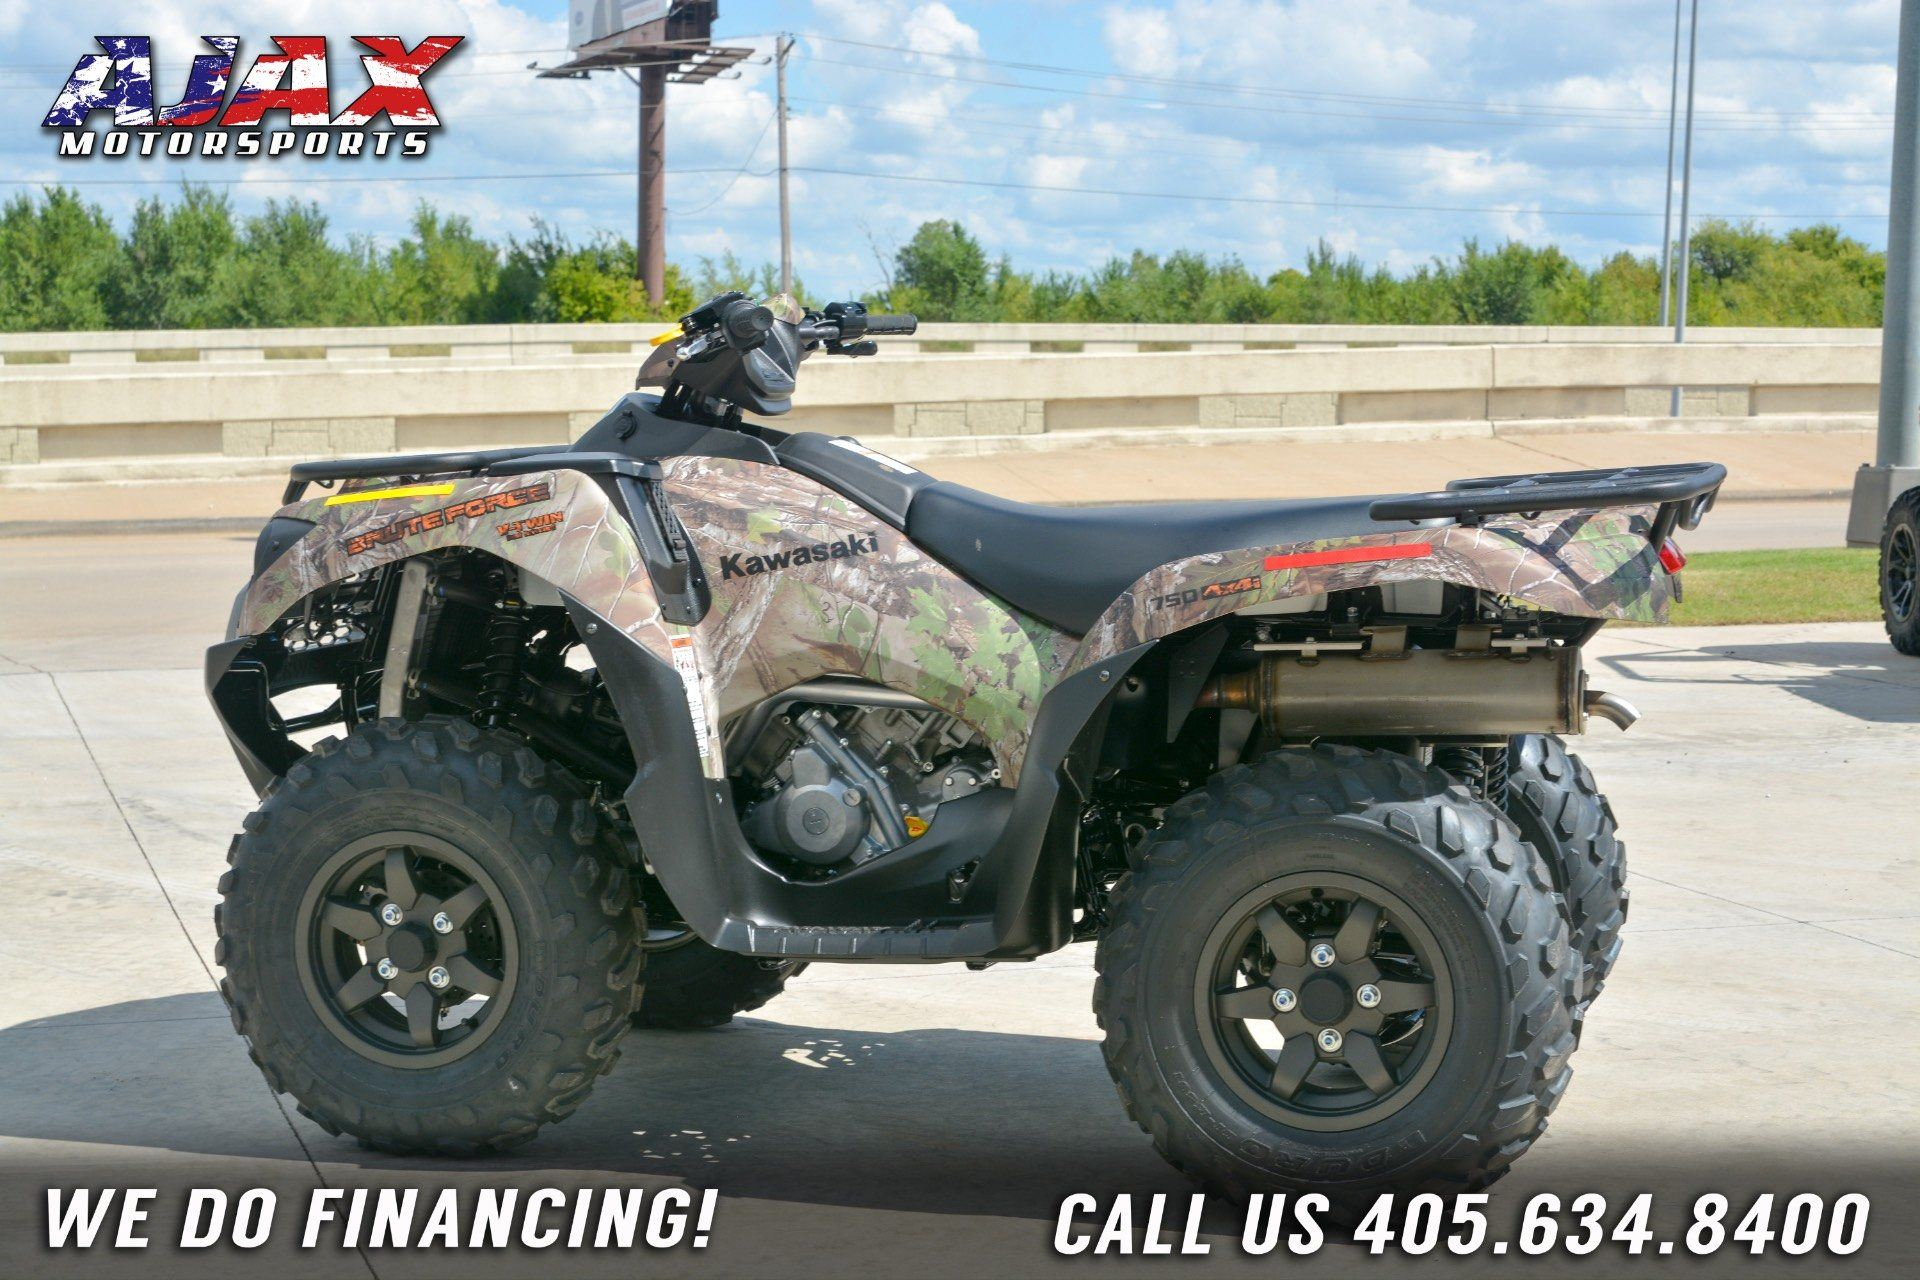 2019 Kawasaki Brute Force 750 4x4i EPS Camo in Oklahoma City, Oklahoma - Photo 9